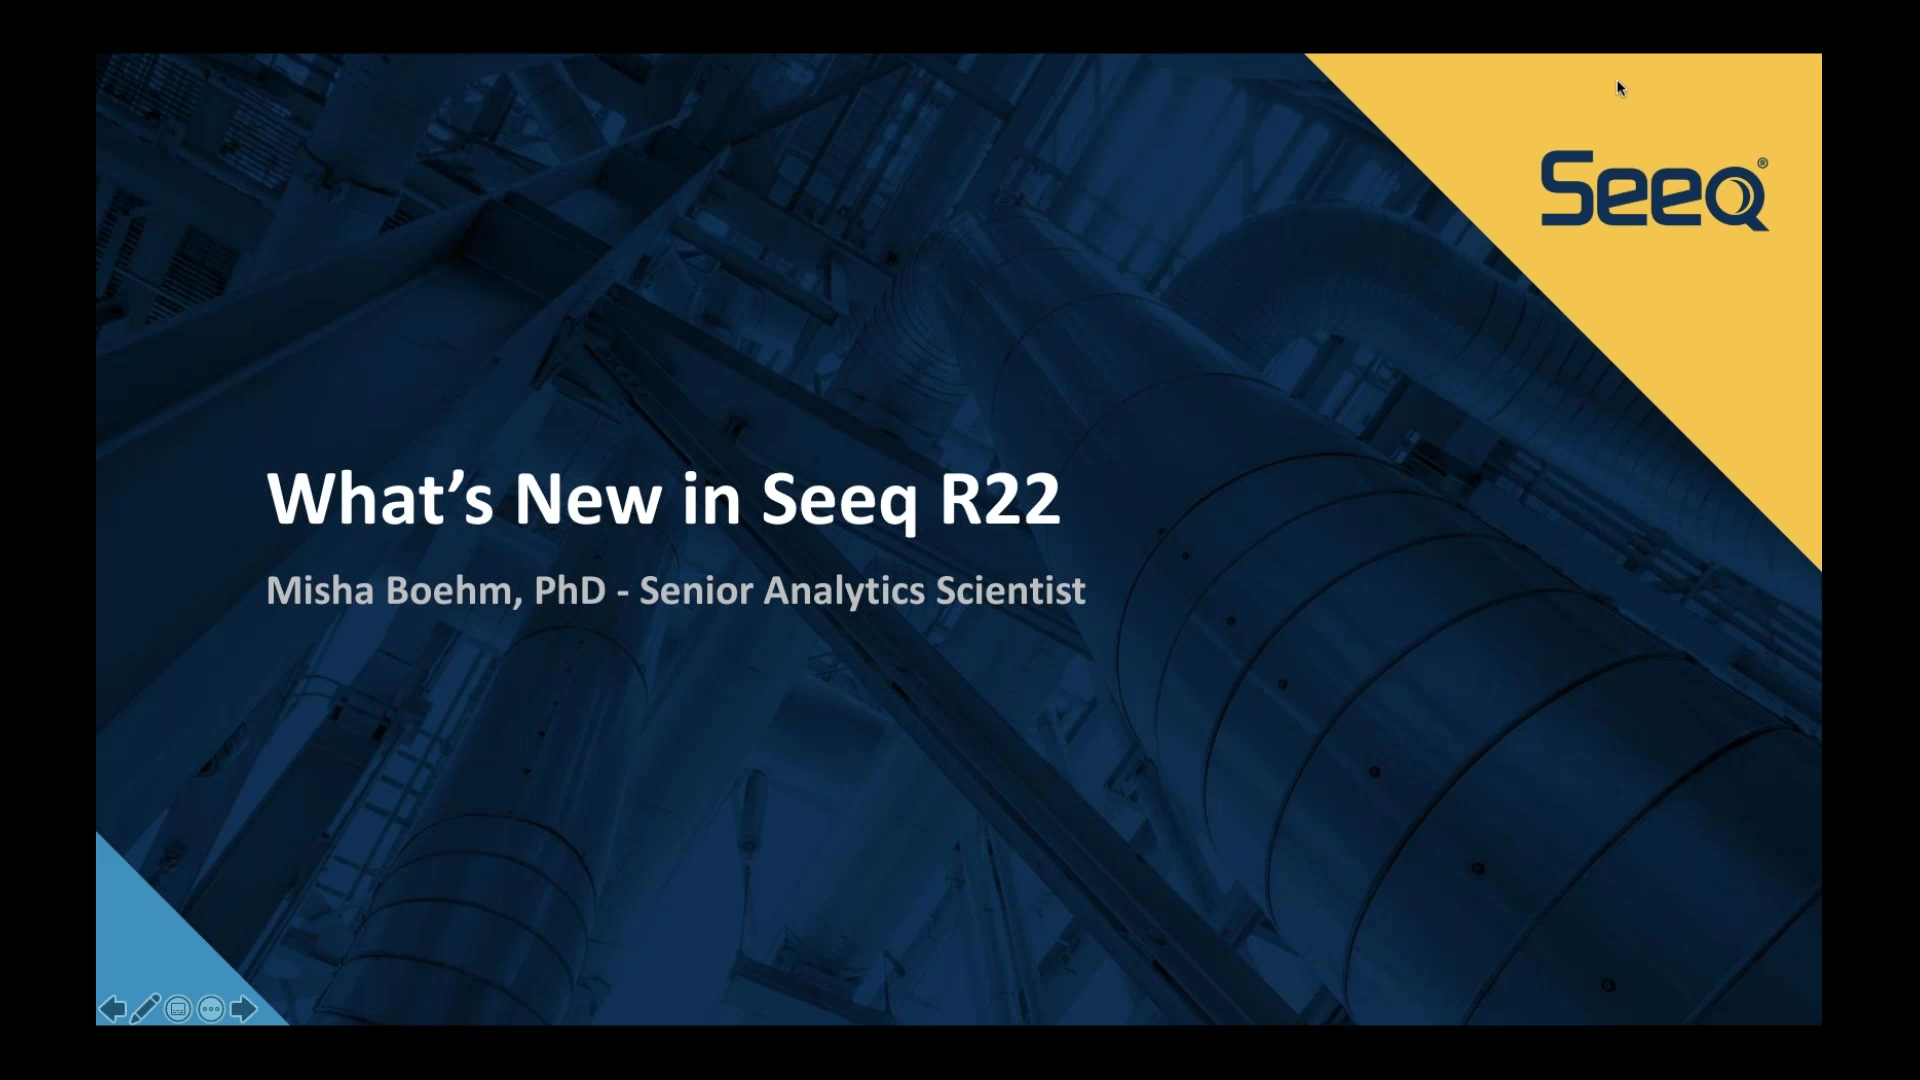 New Features in Seeq R22